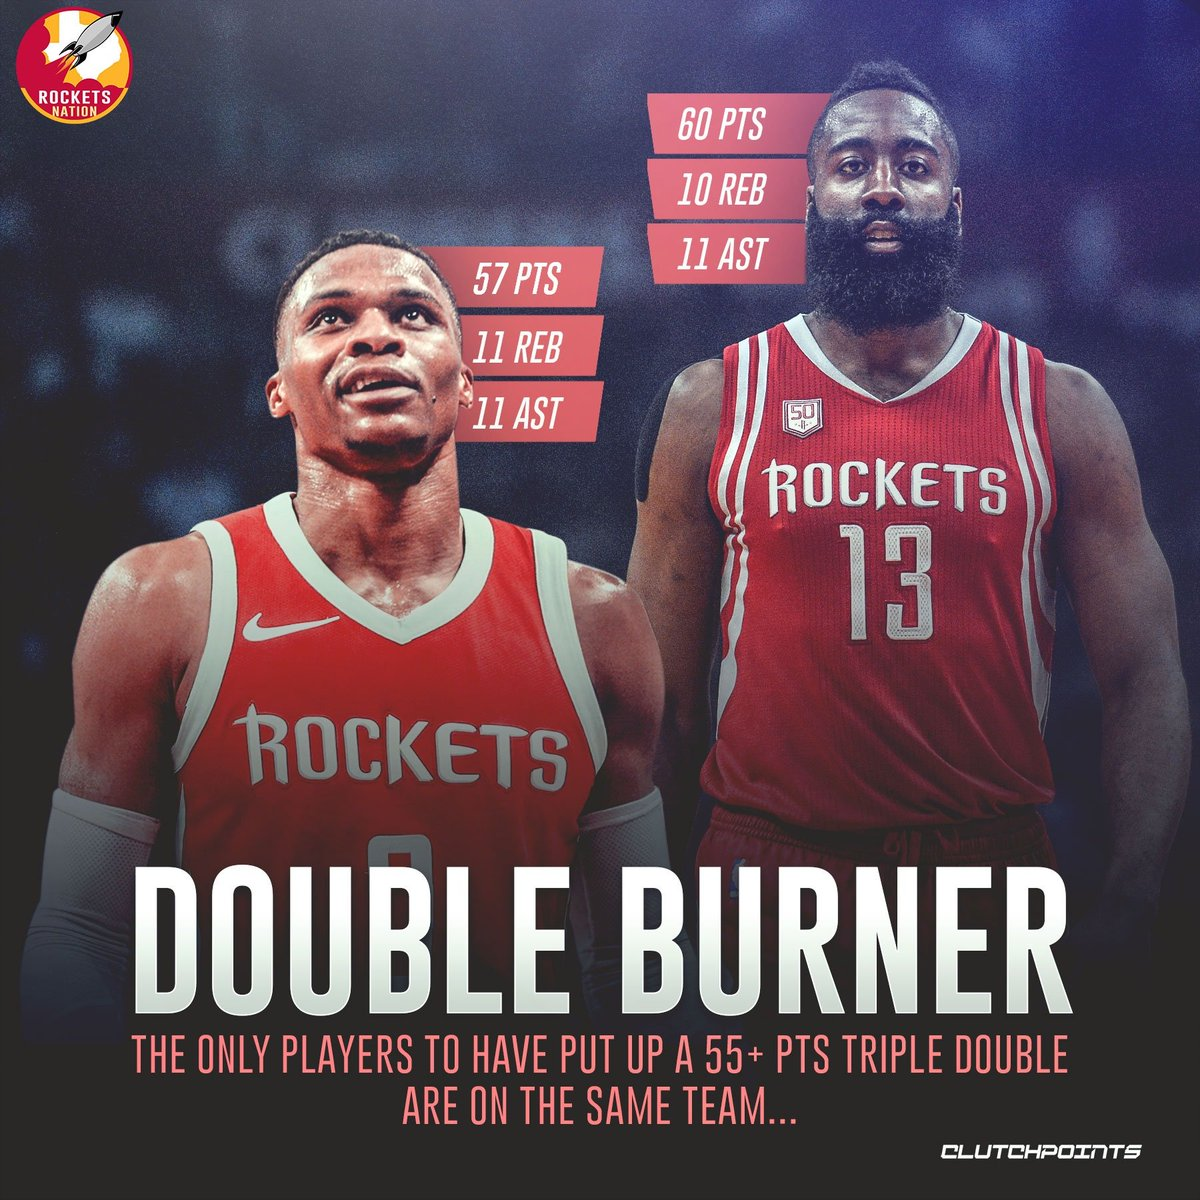 With two of the heaviest scorers in the league teaming up, expect bucket after bucket when next season 🔥  #Rockets #RunAsOne